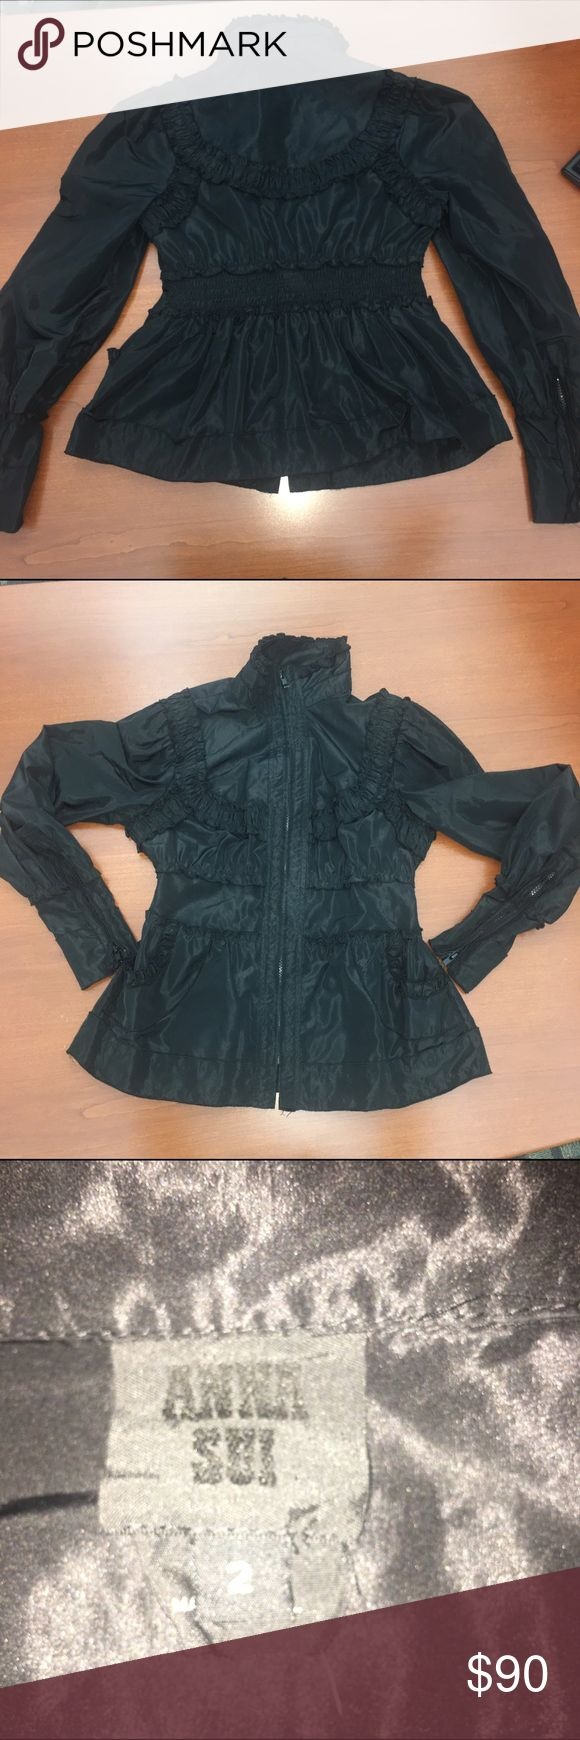 Anna Sui zip high neck jacket Ruffle detail , zips at wrists , cinched at waist , figure flattering. Anna Sui Jackets & Coats